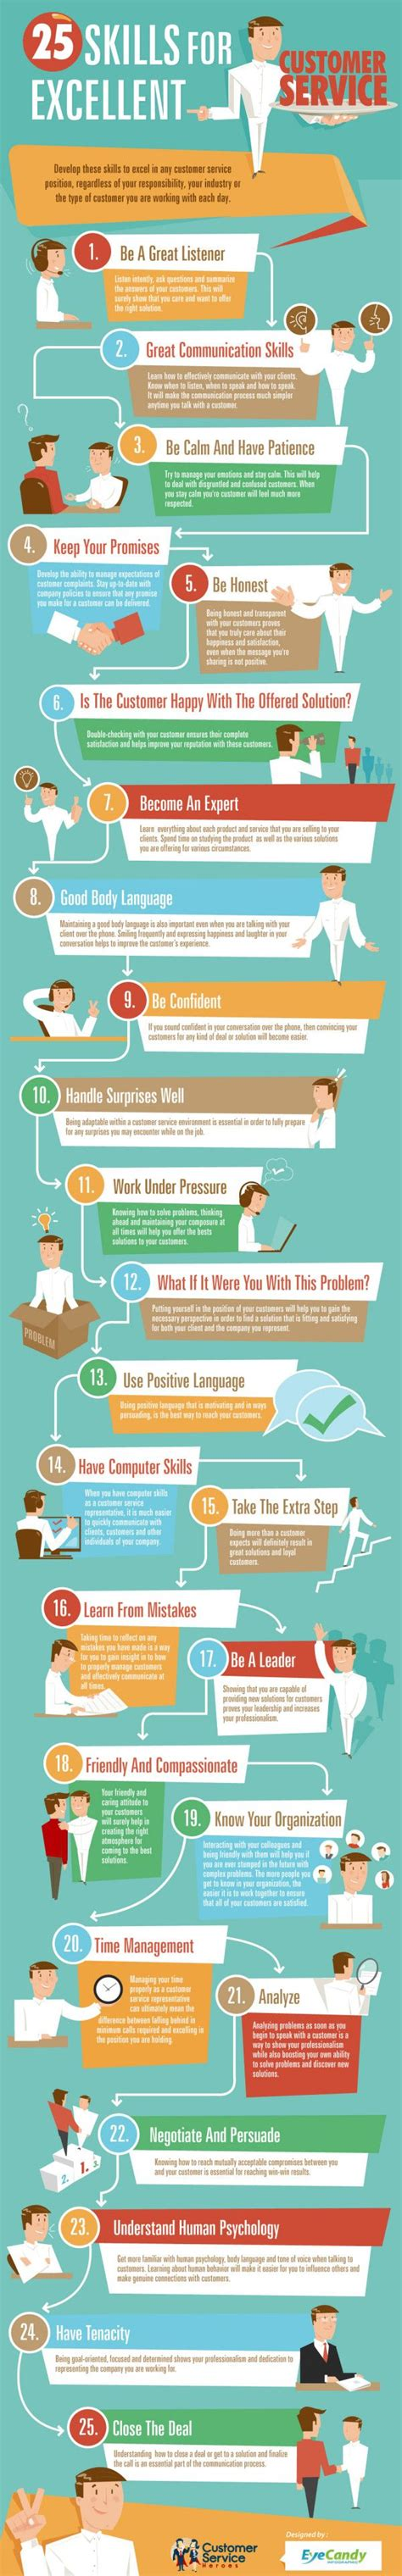 25 skills for excellent customer service customer service infograph